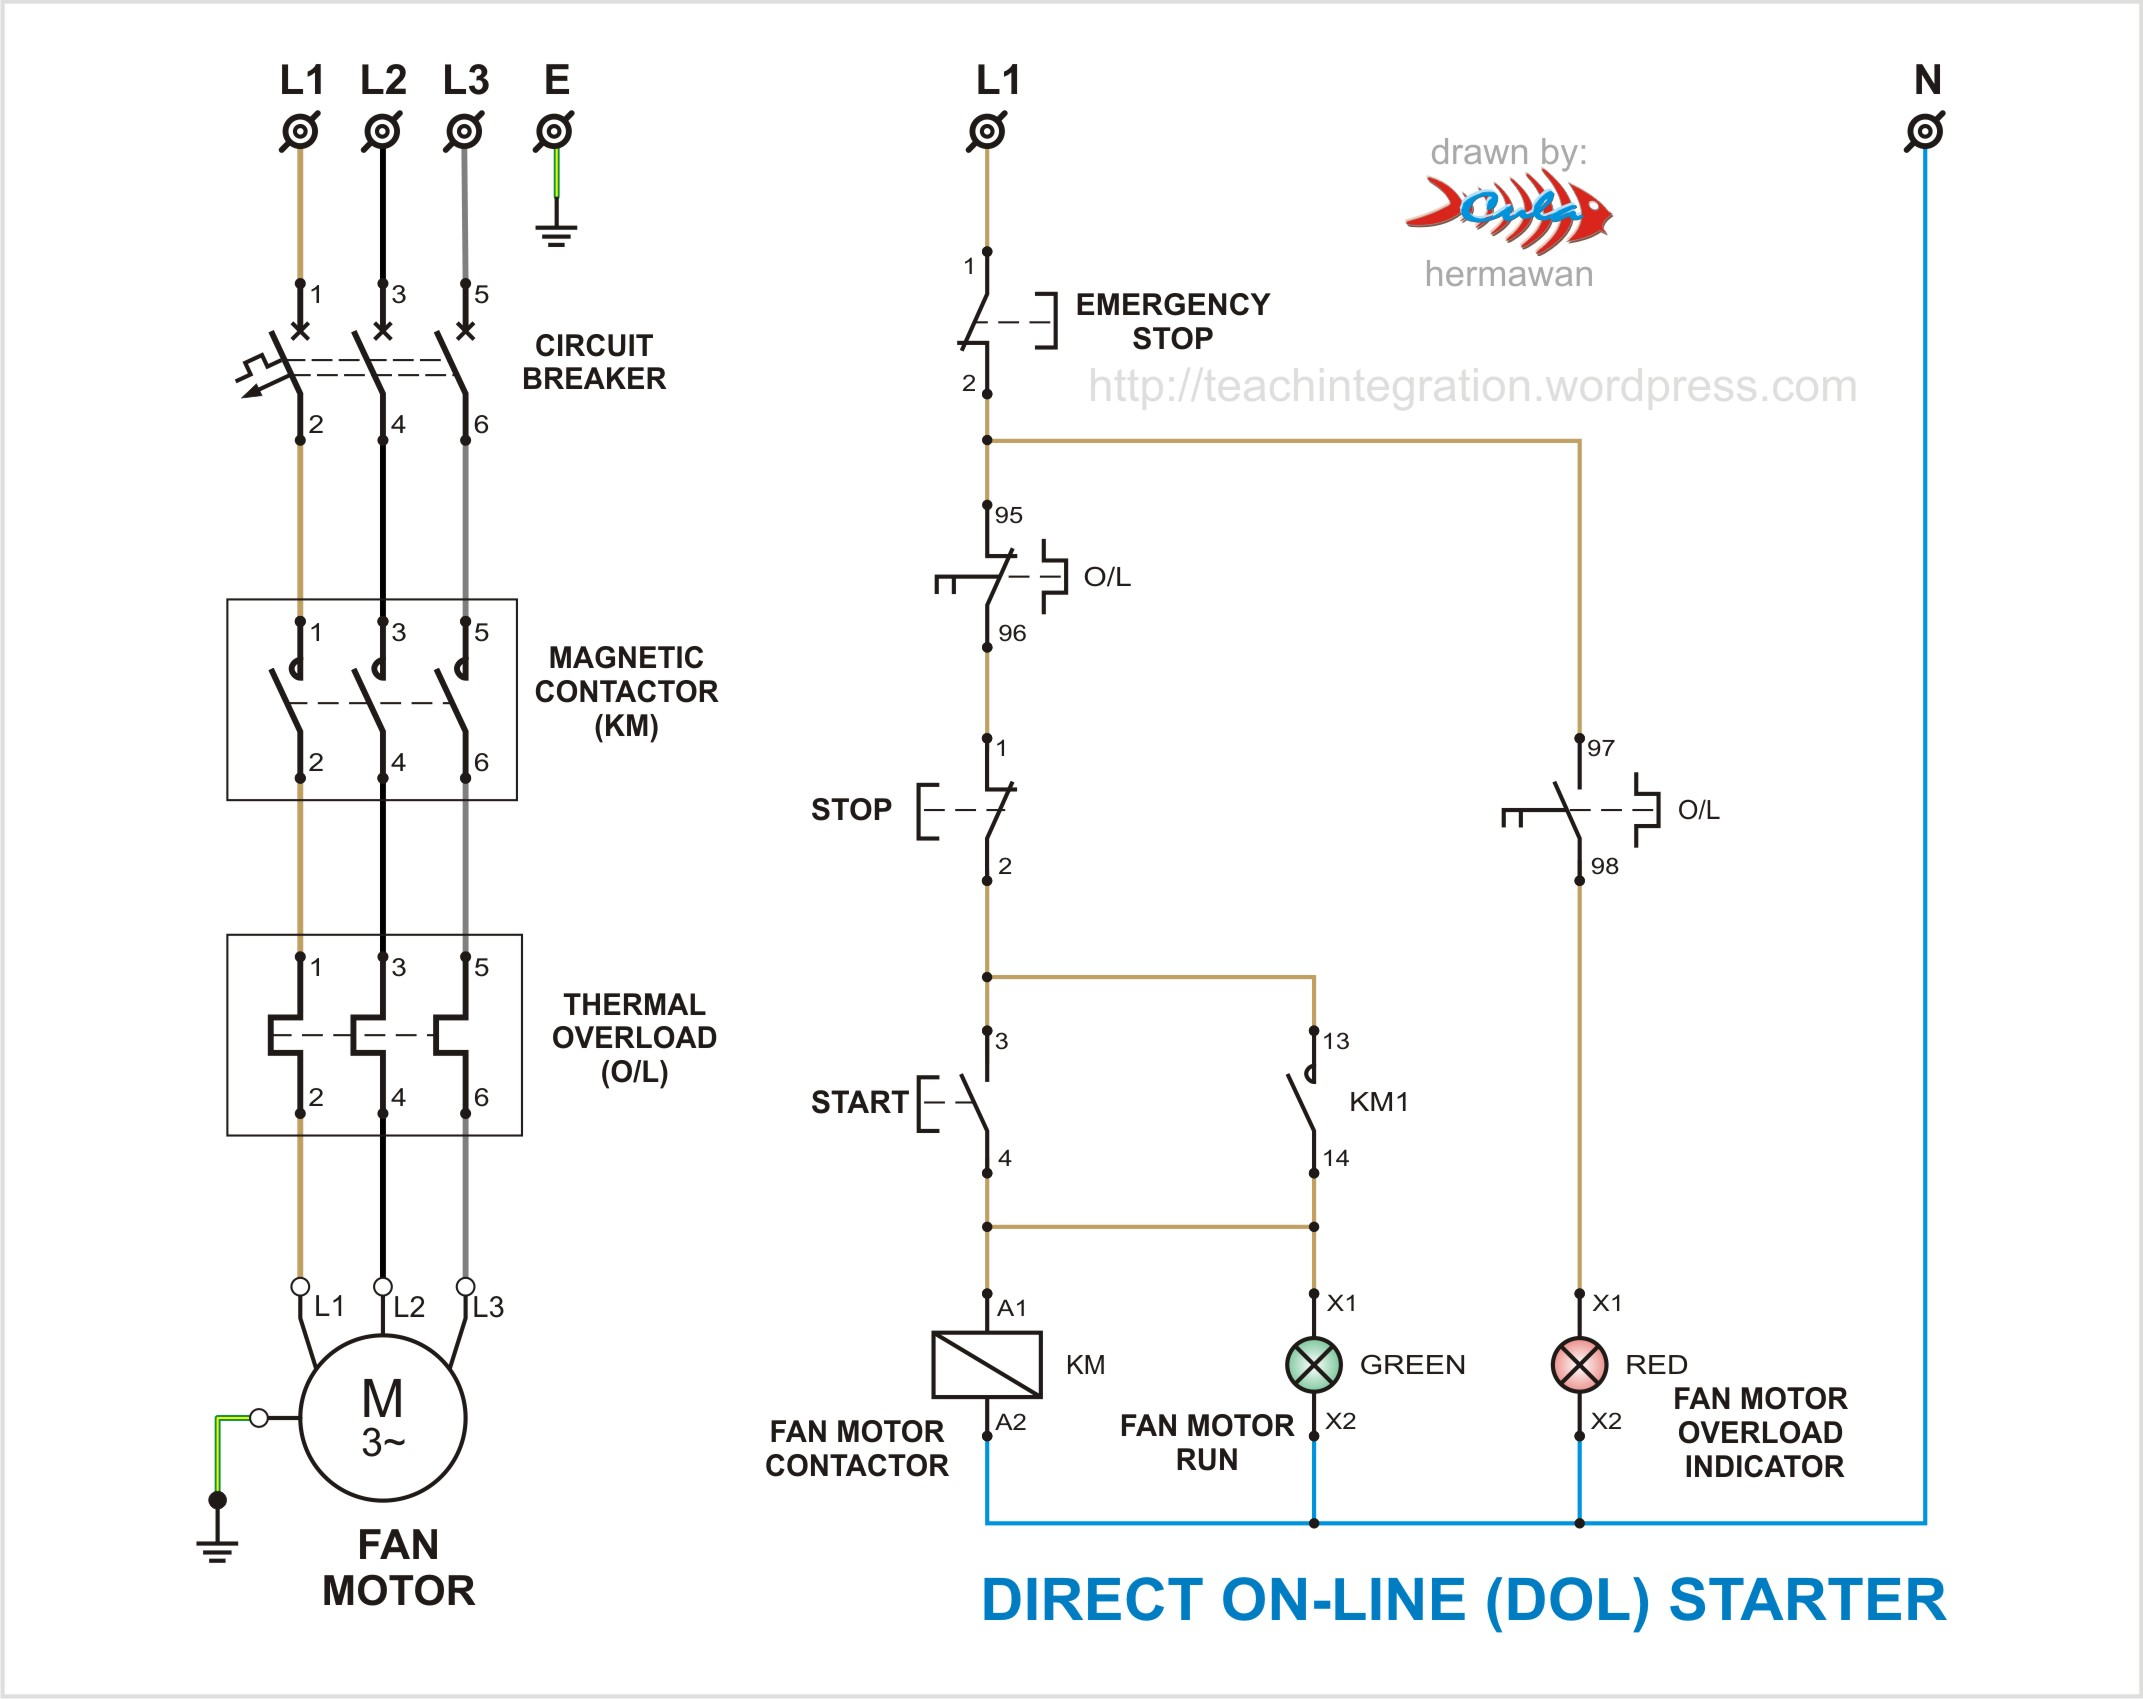 danfoss ip55 motor starter wiring diagram 2000 ford f150 stereo radio efcaviation dol pt teach integration